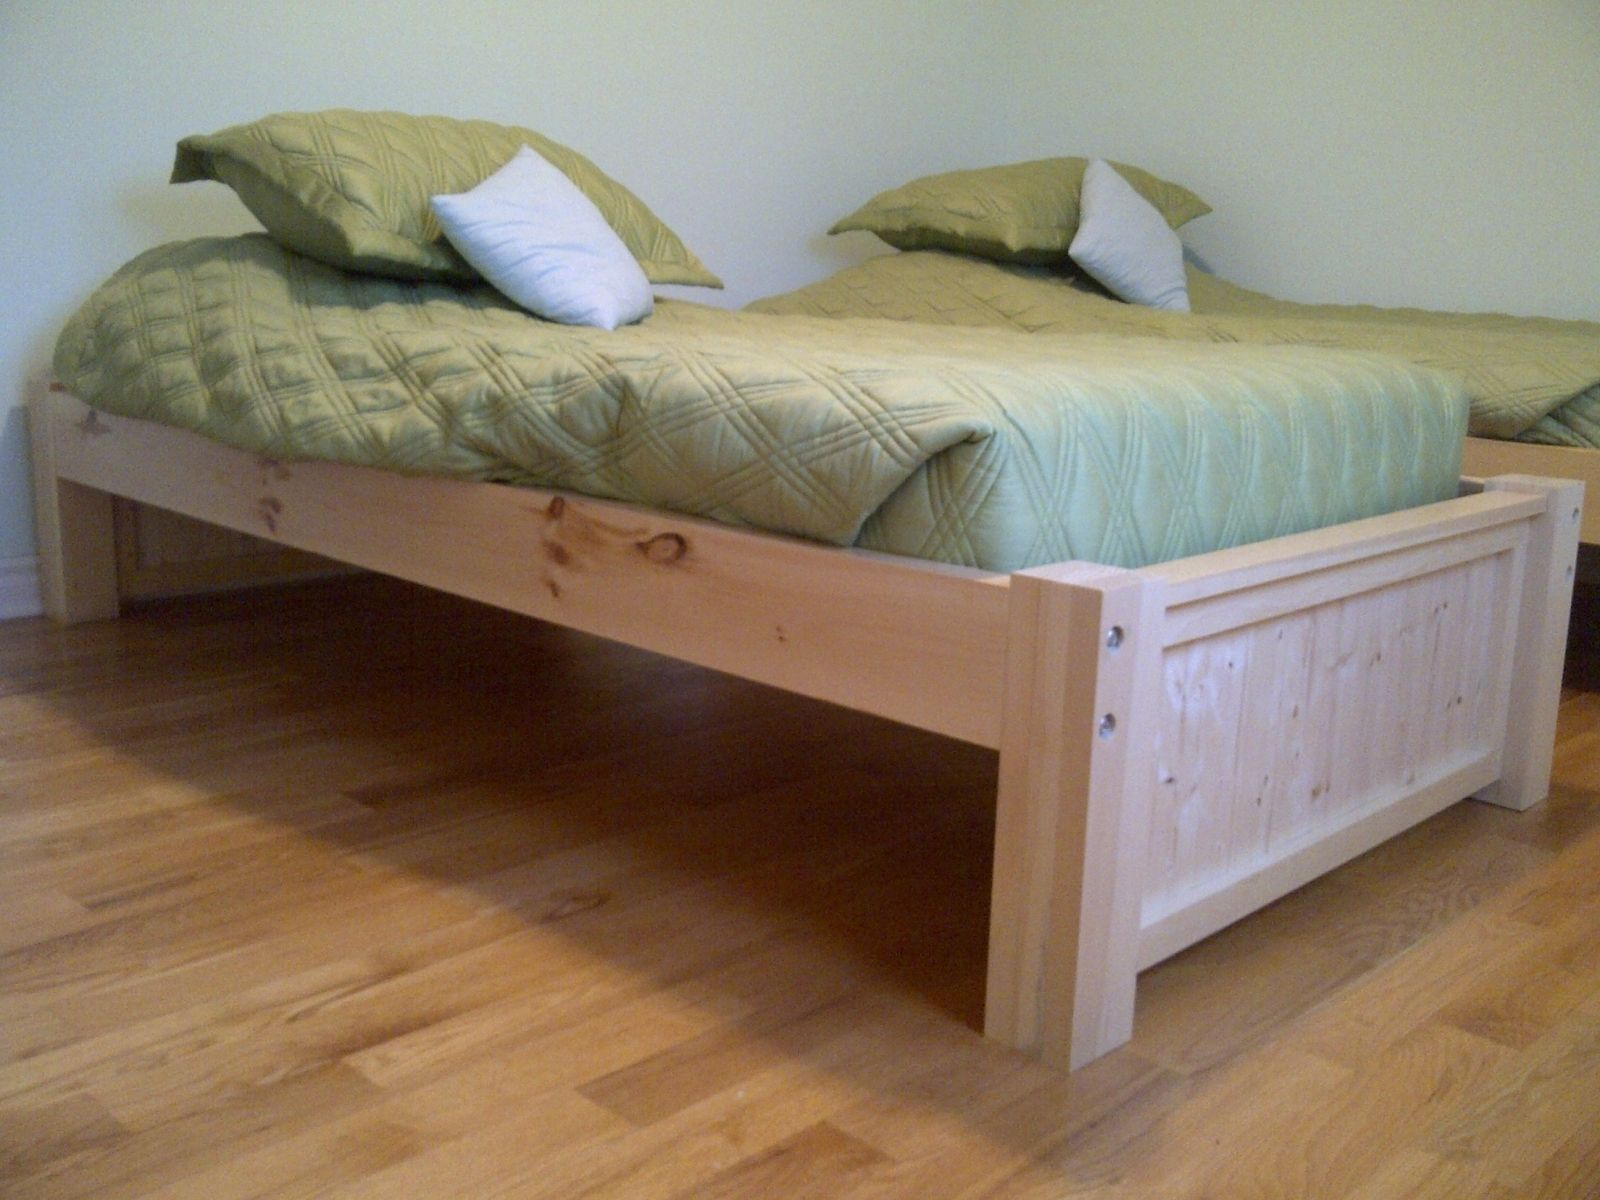 Best Ana White Build A Simple Bed Full Size Free And Easy Diy 400 x 300